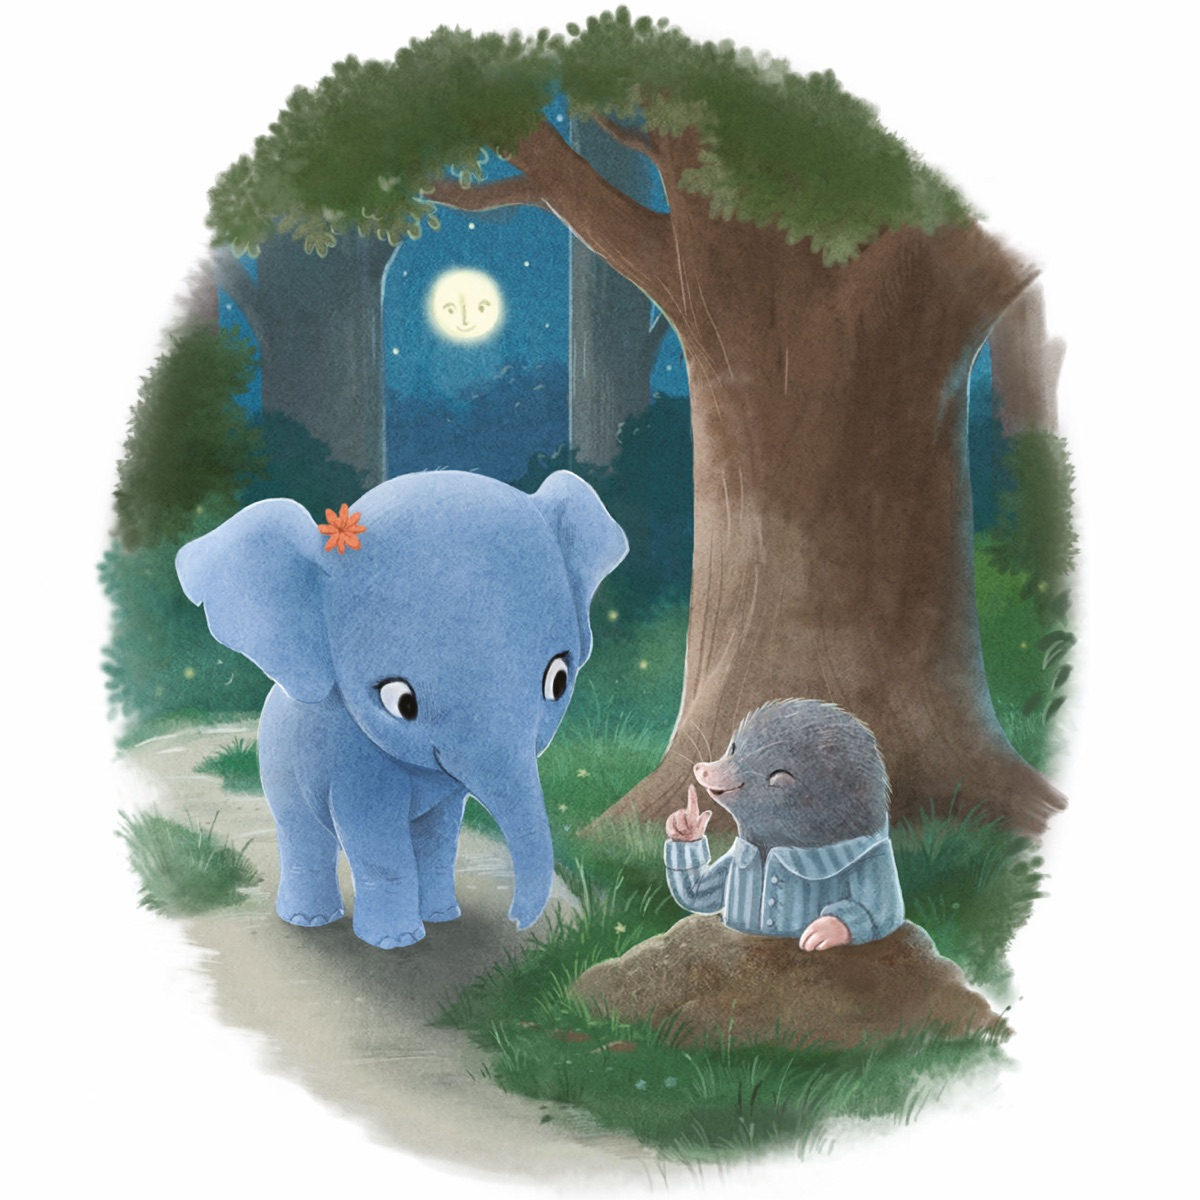 The Little Elephant Who Wants to Fall Asleep: Reclaim Bedtime Podcast